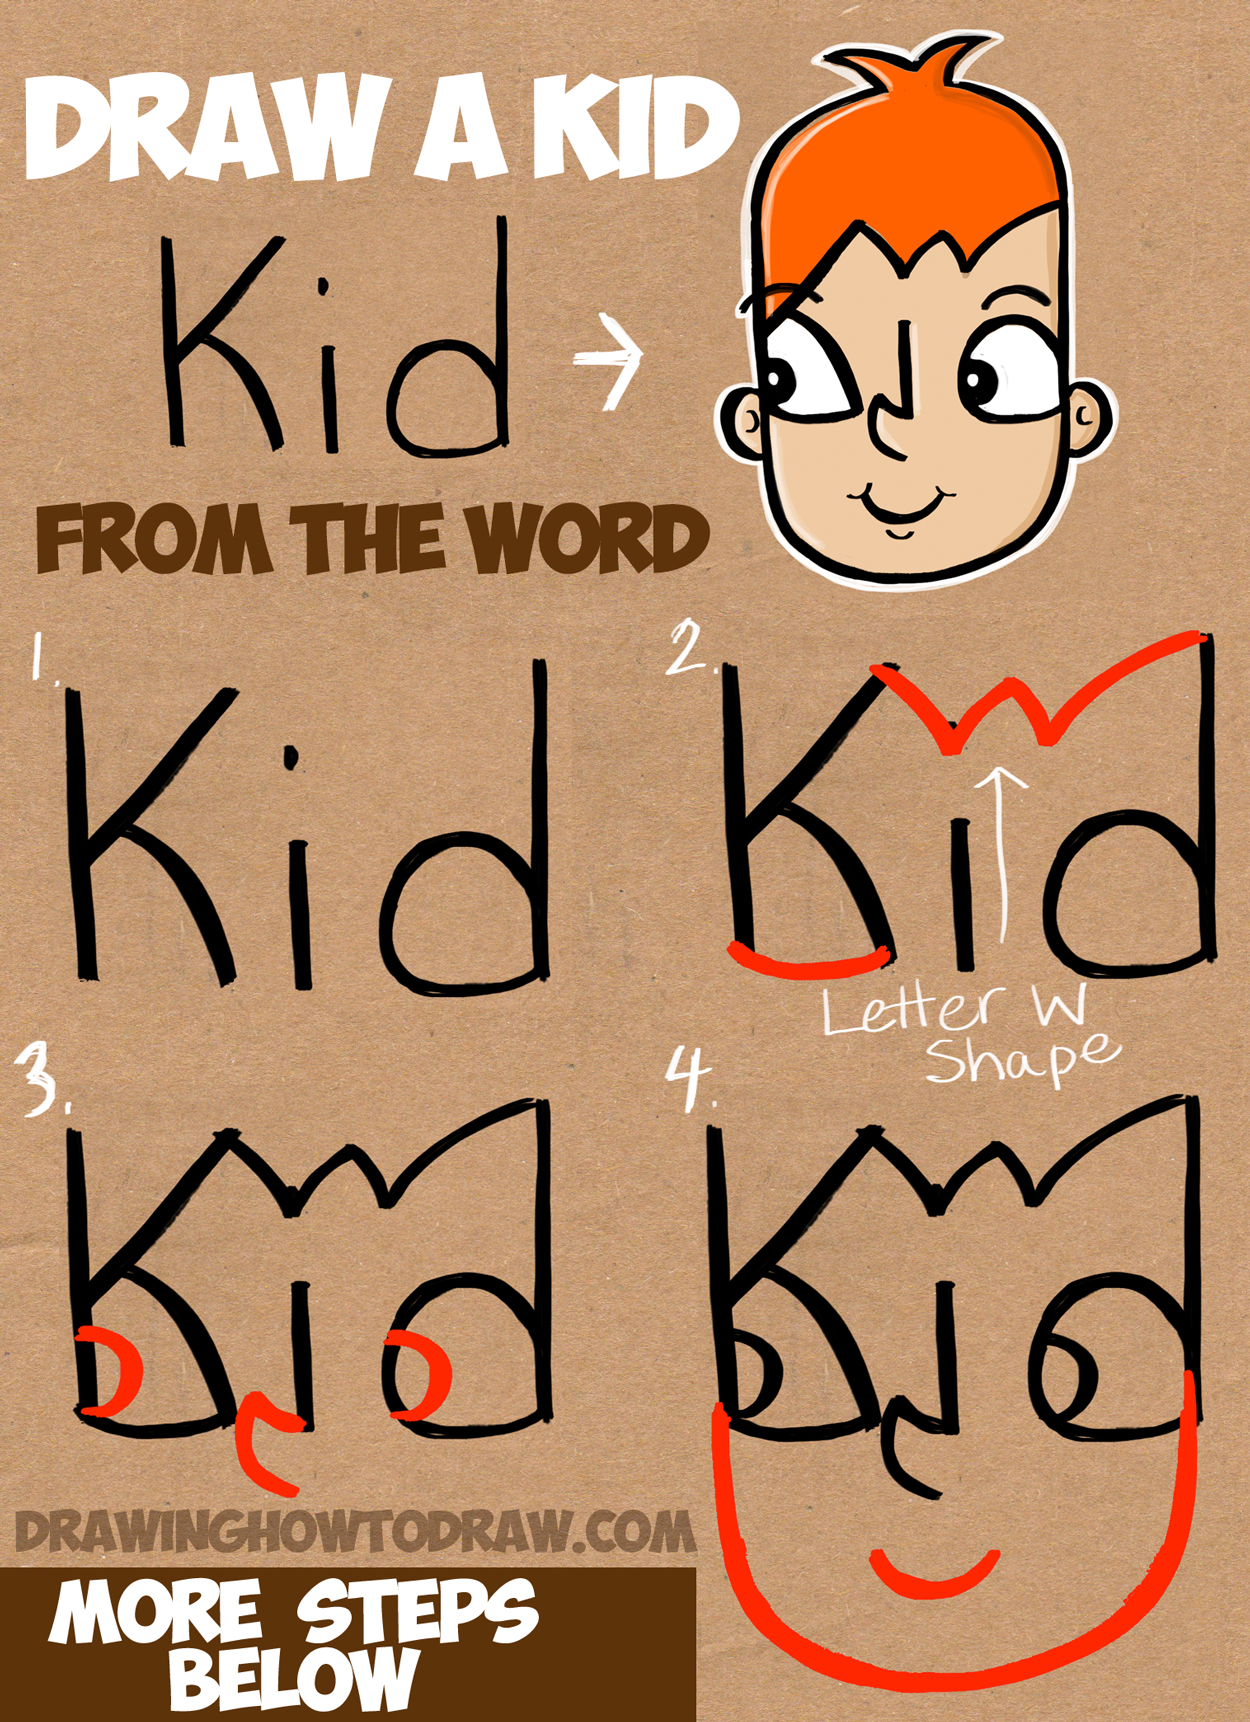 learn how to draw a cartoon kid from the word kid simple step by step